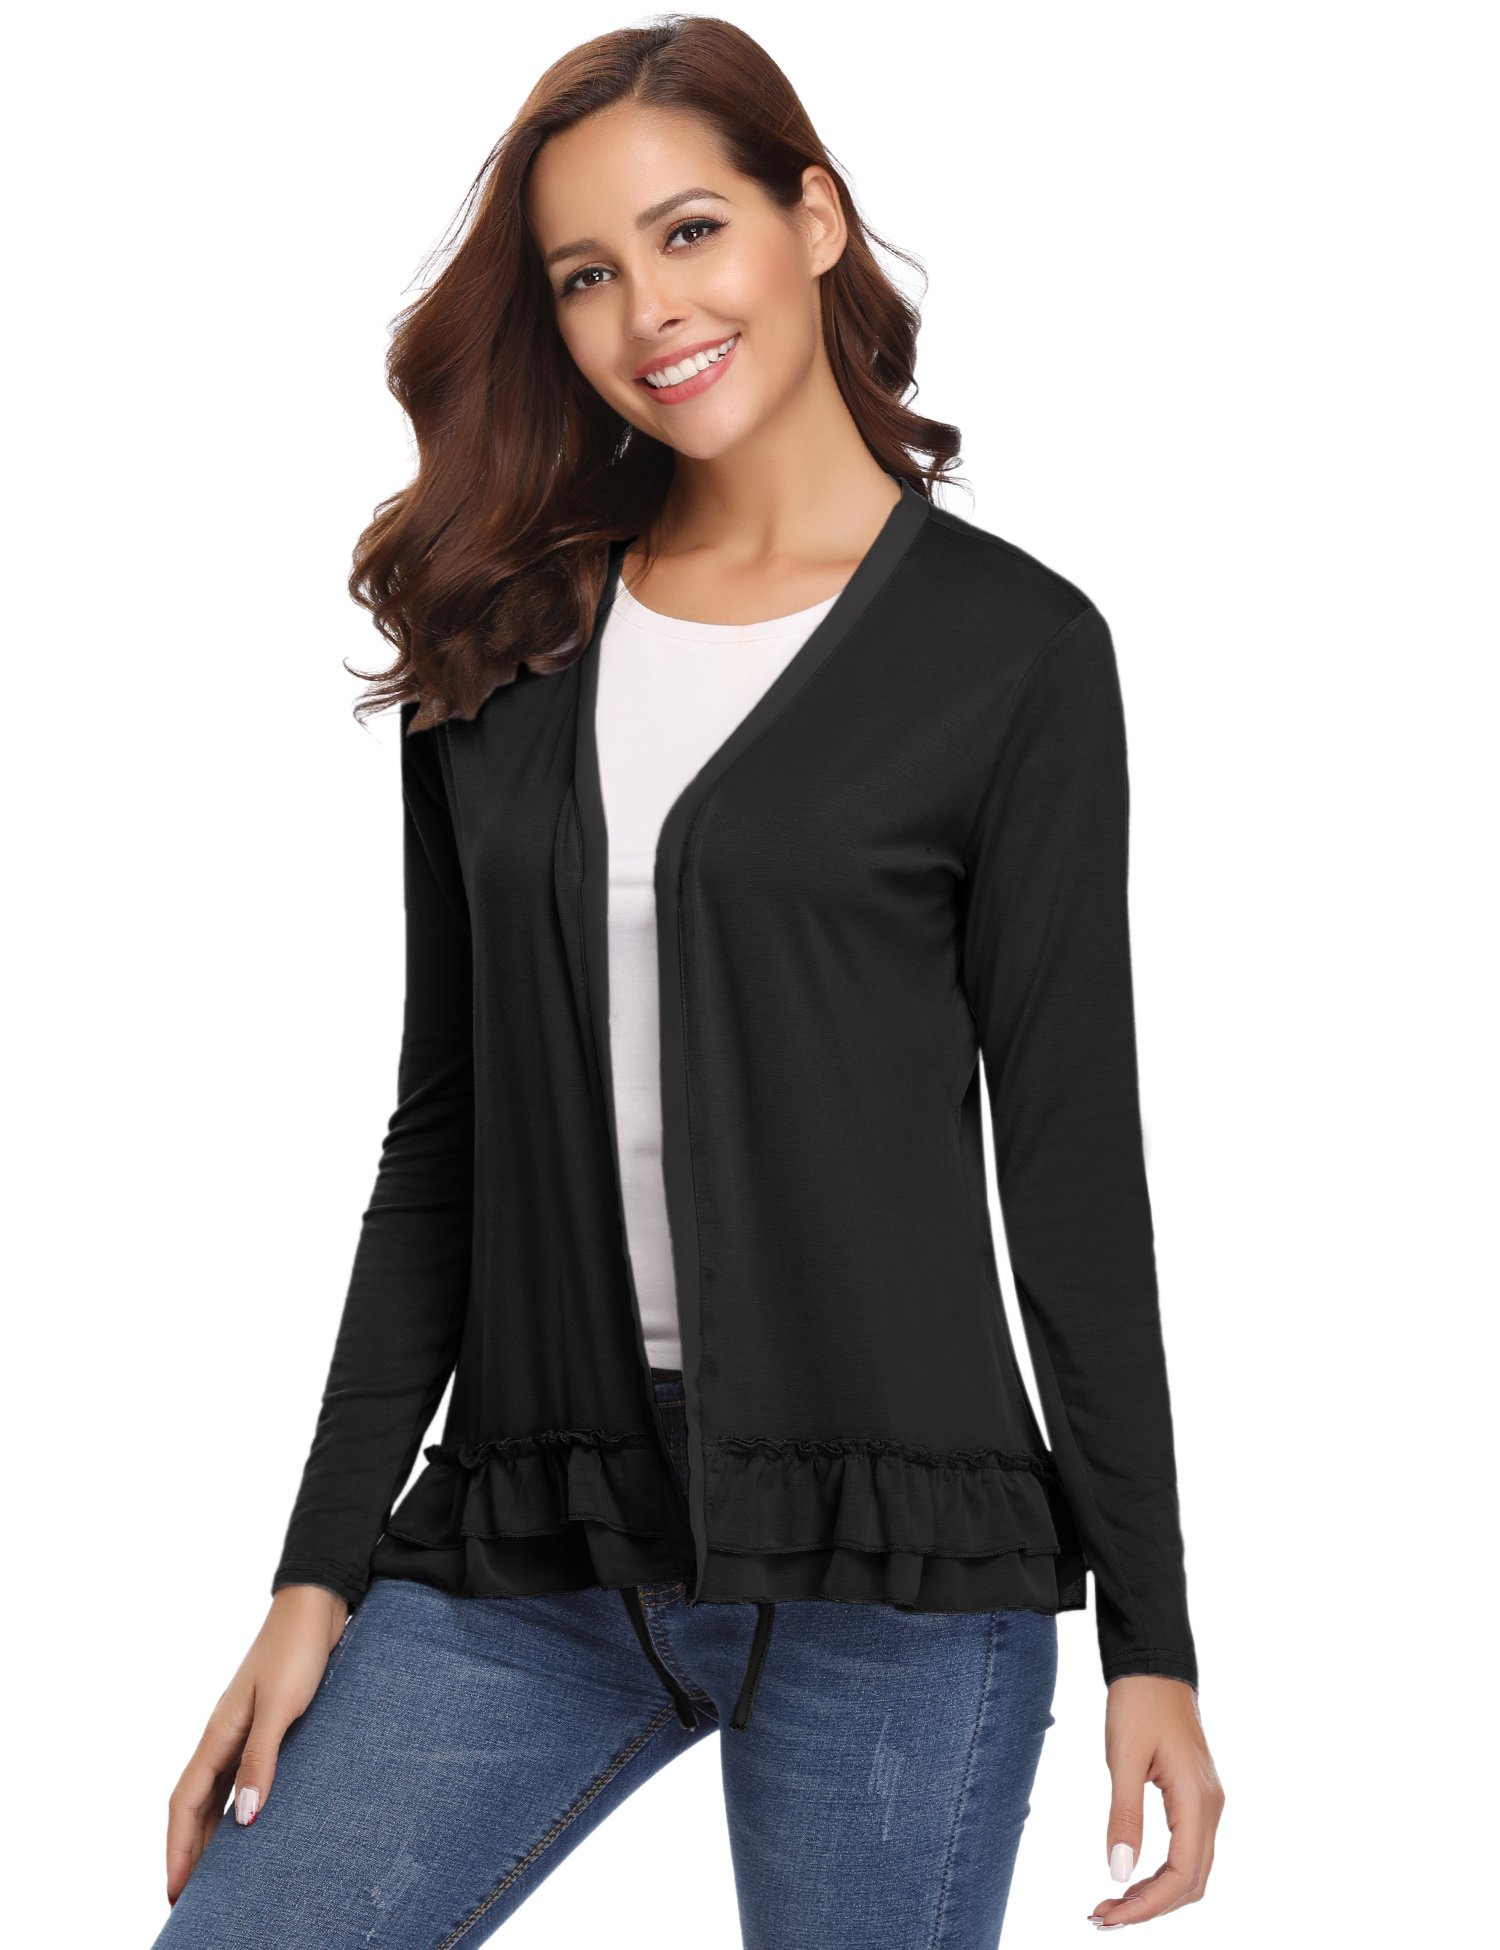 Abollria Women's Loose Casual Long Sleeved Open Front Breathable Cardigans(Black,L)